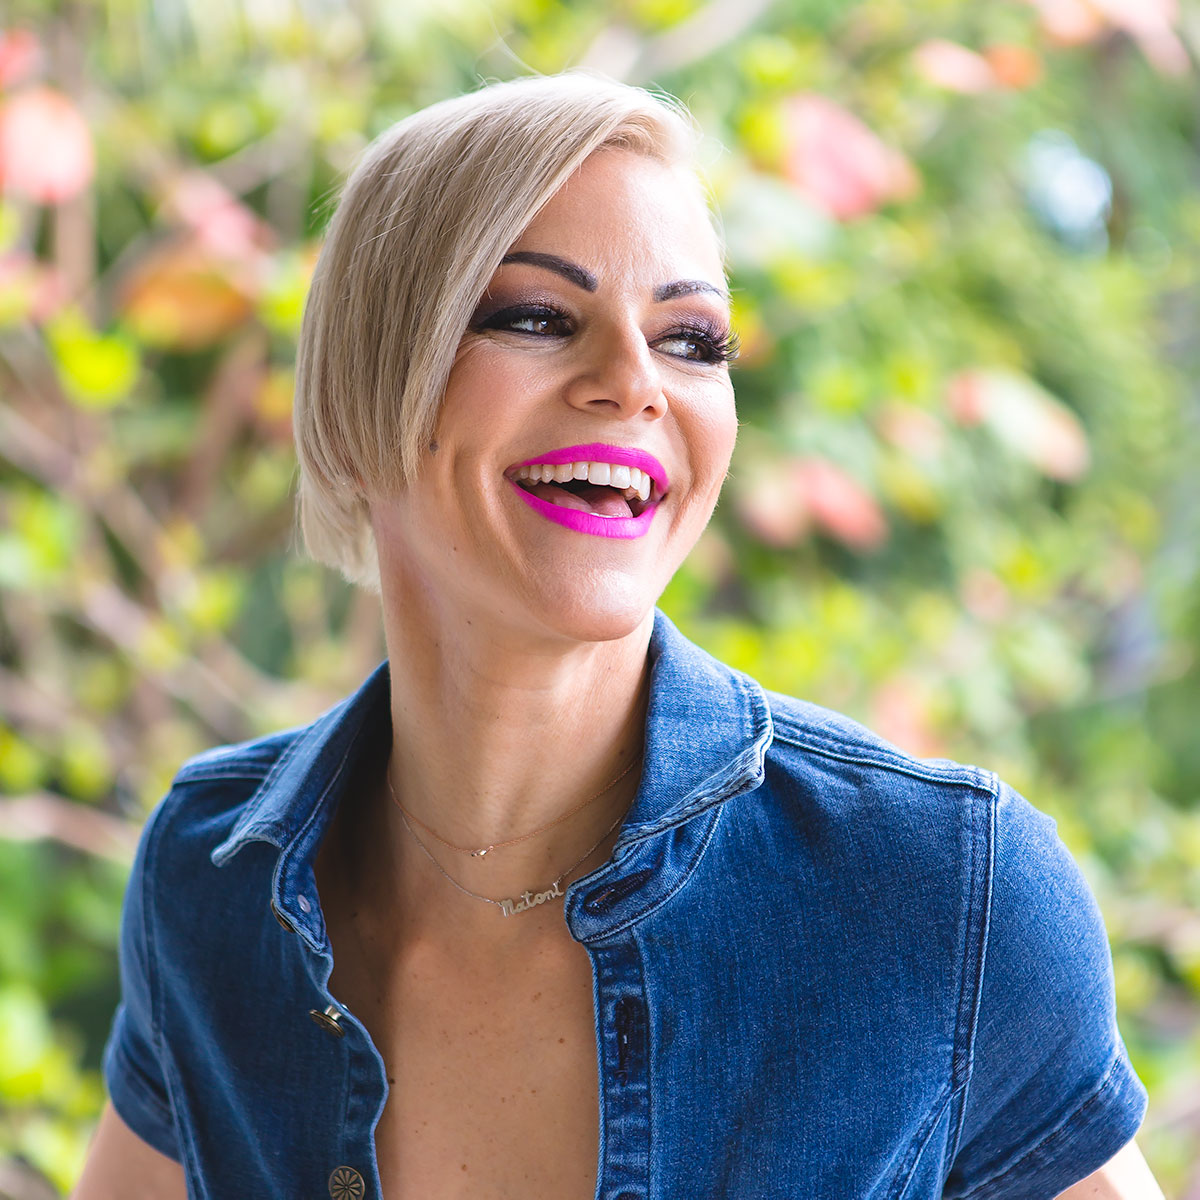 Danielle Natoni smiling with blond hair and pink lipstick